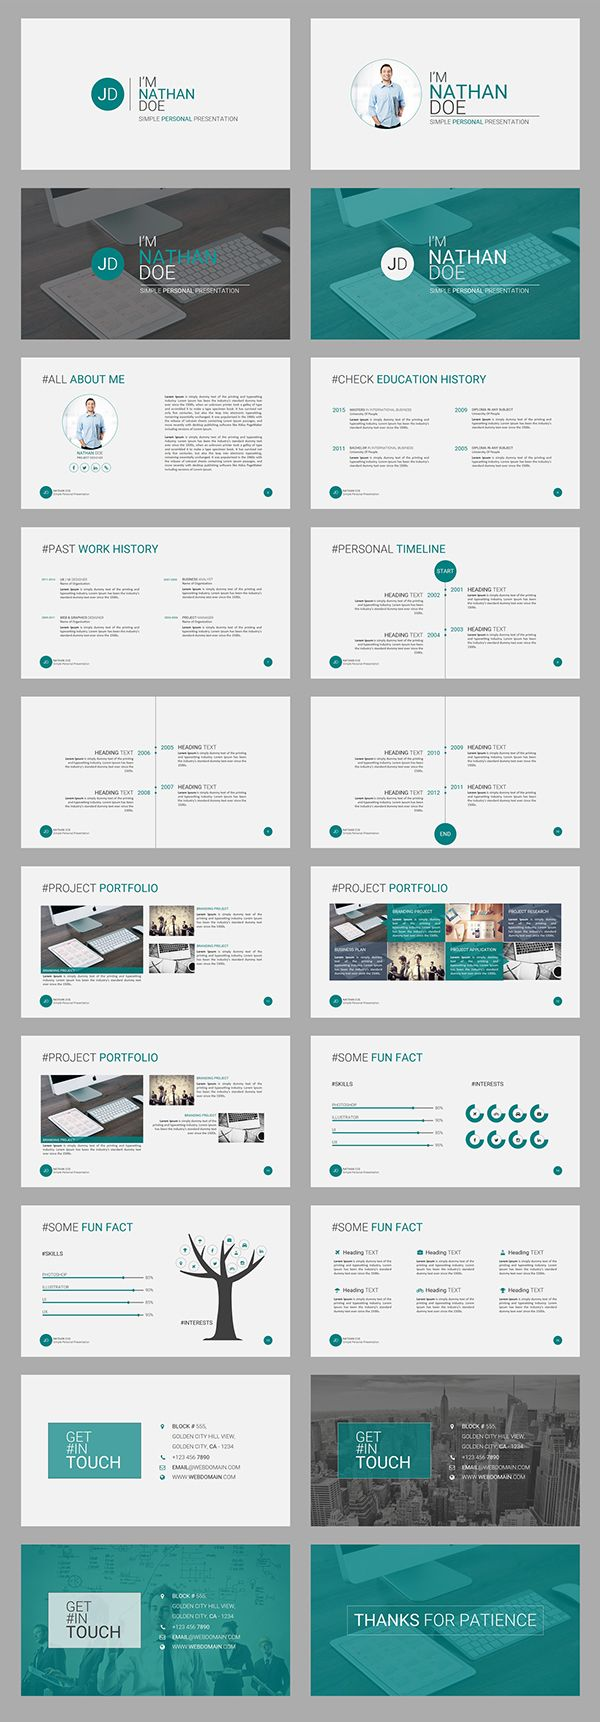 Best 25 It Cv Ideas On Pinterest Job Cv Cv Tips And Cv Writing